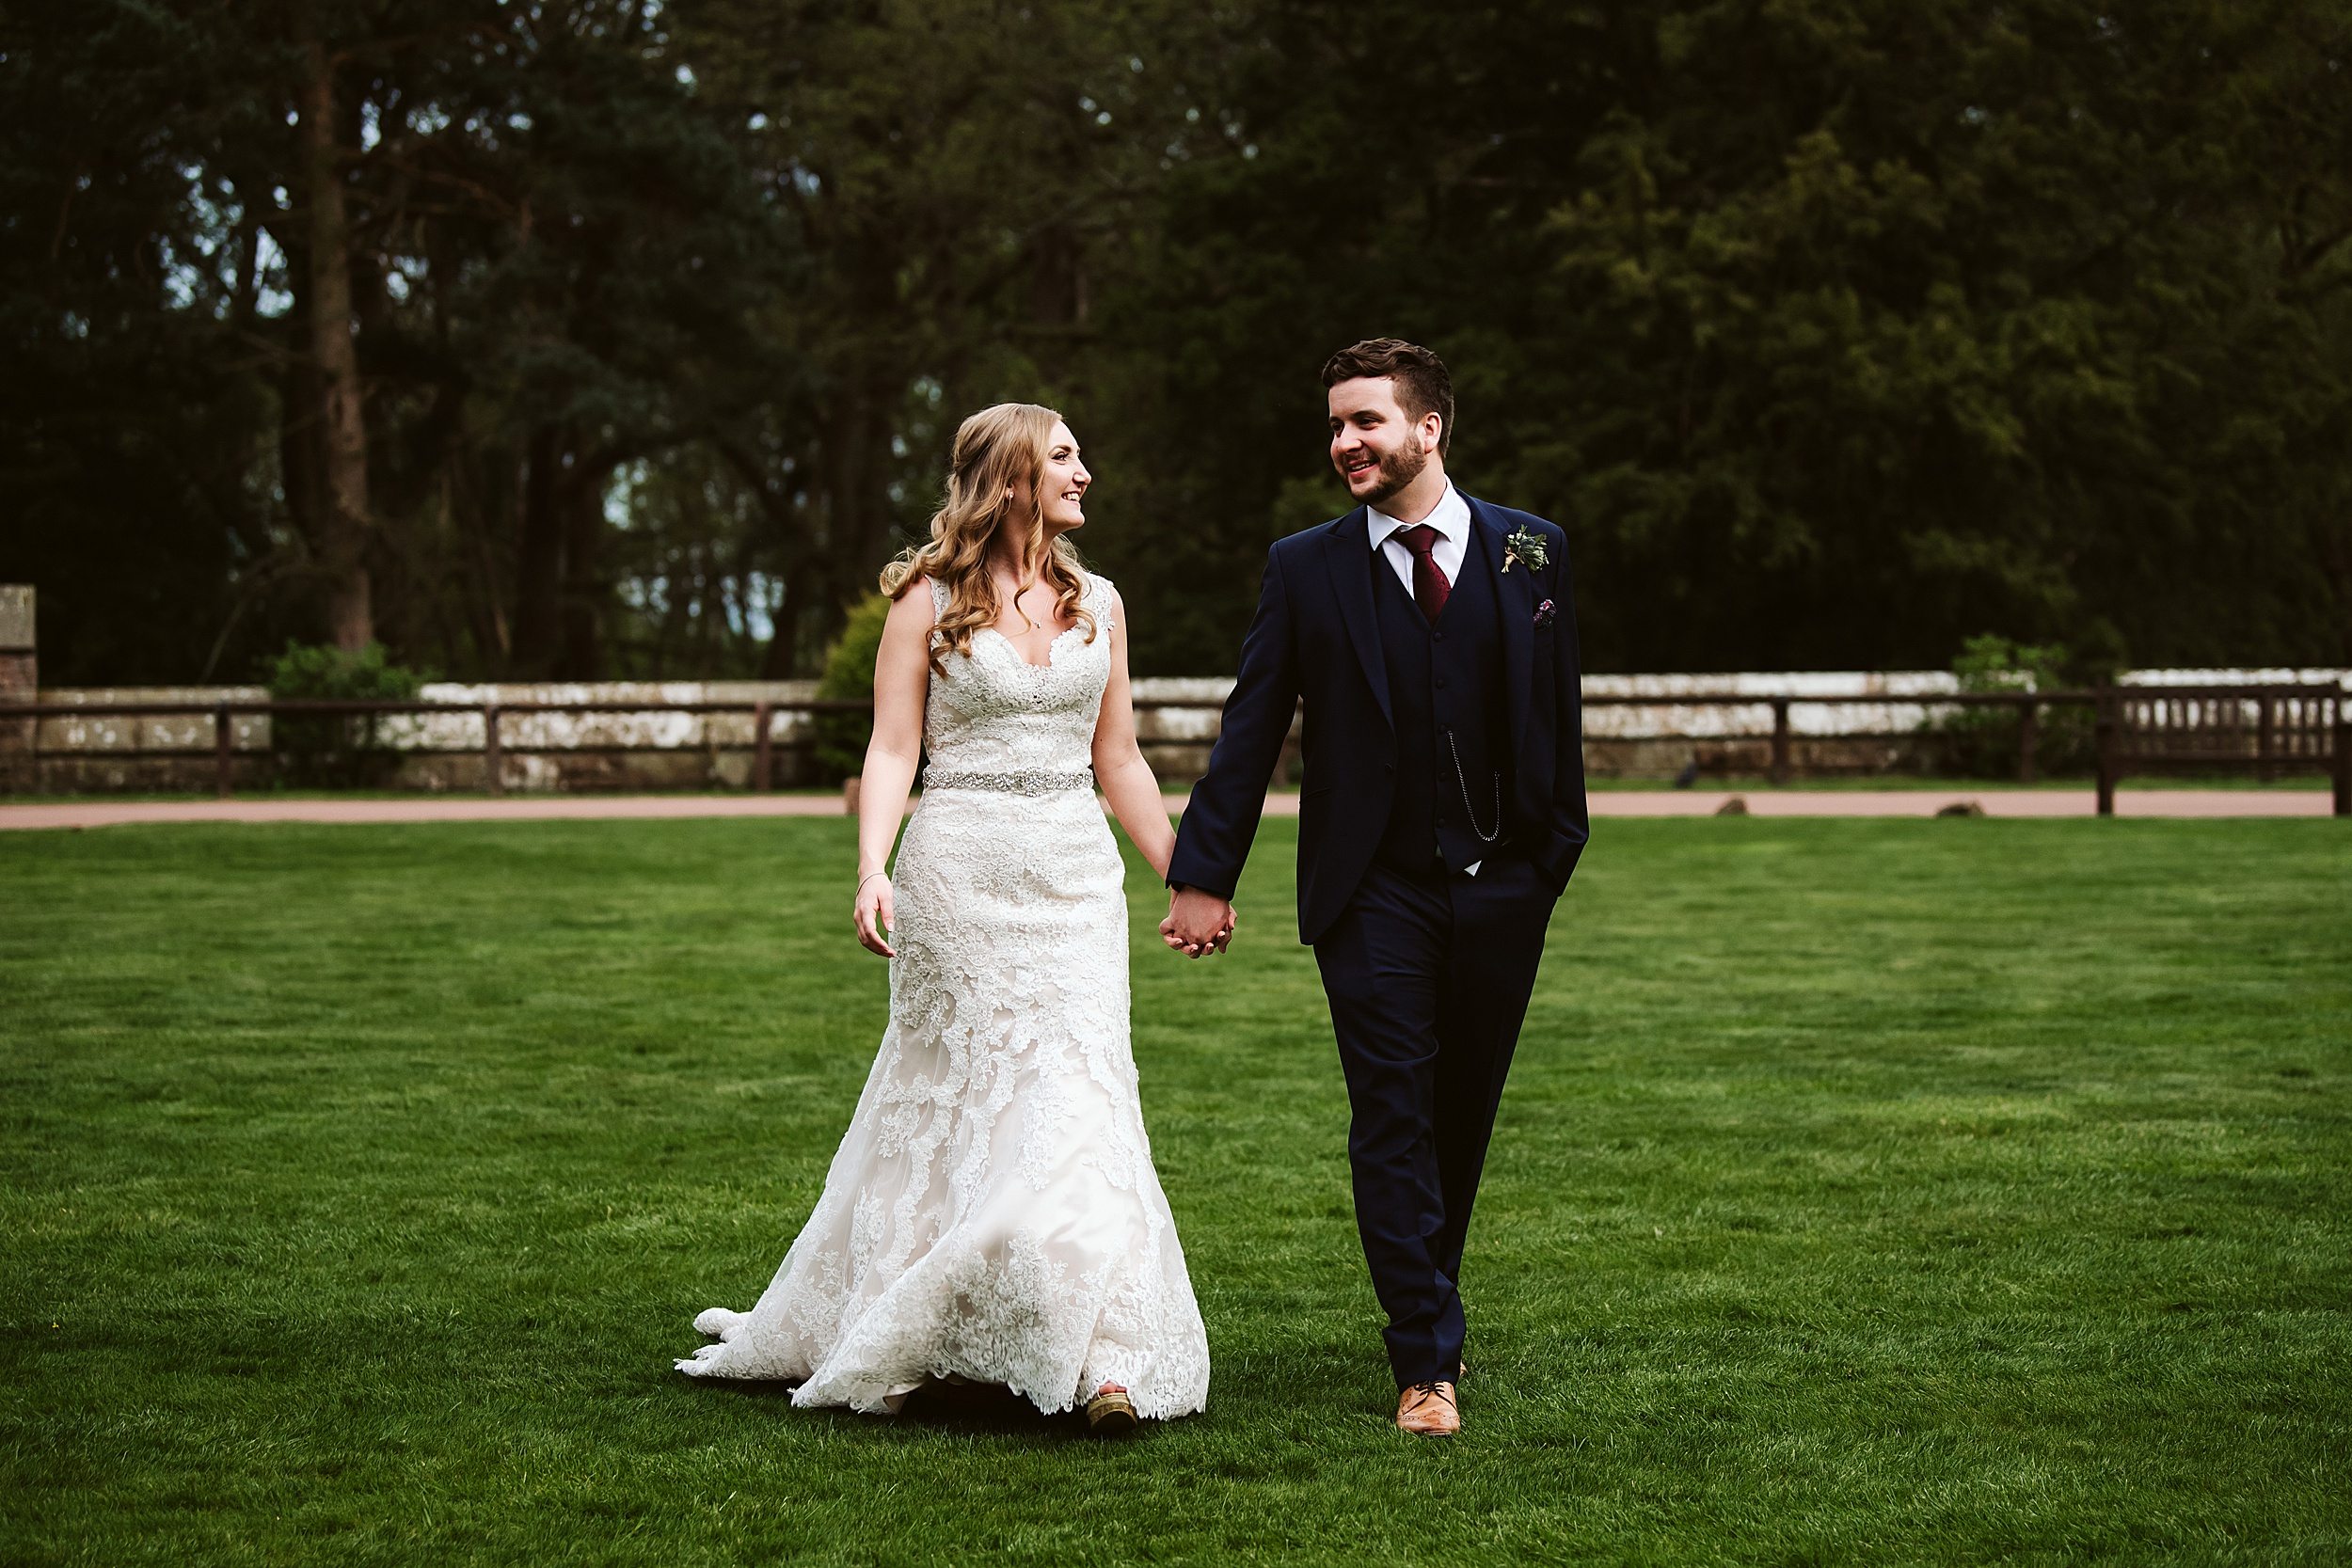 Peckforton_Castle_Cheshire_Toronto_Wedding_Photographer_UK_Destination_Wedding_0111.jpg